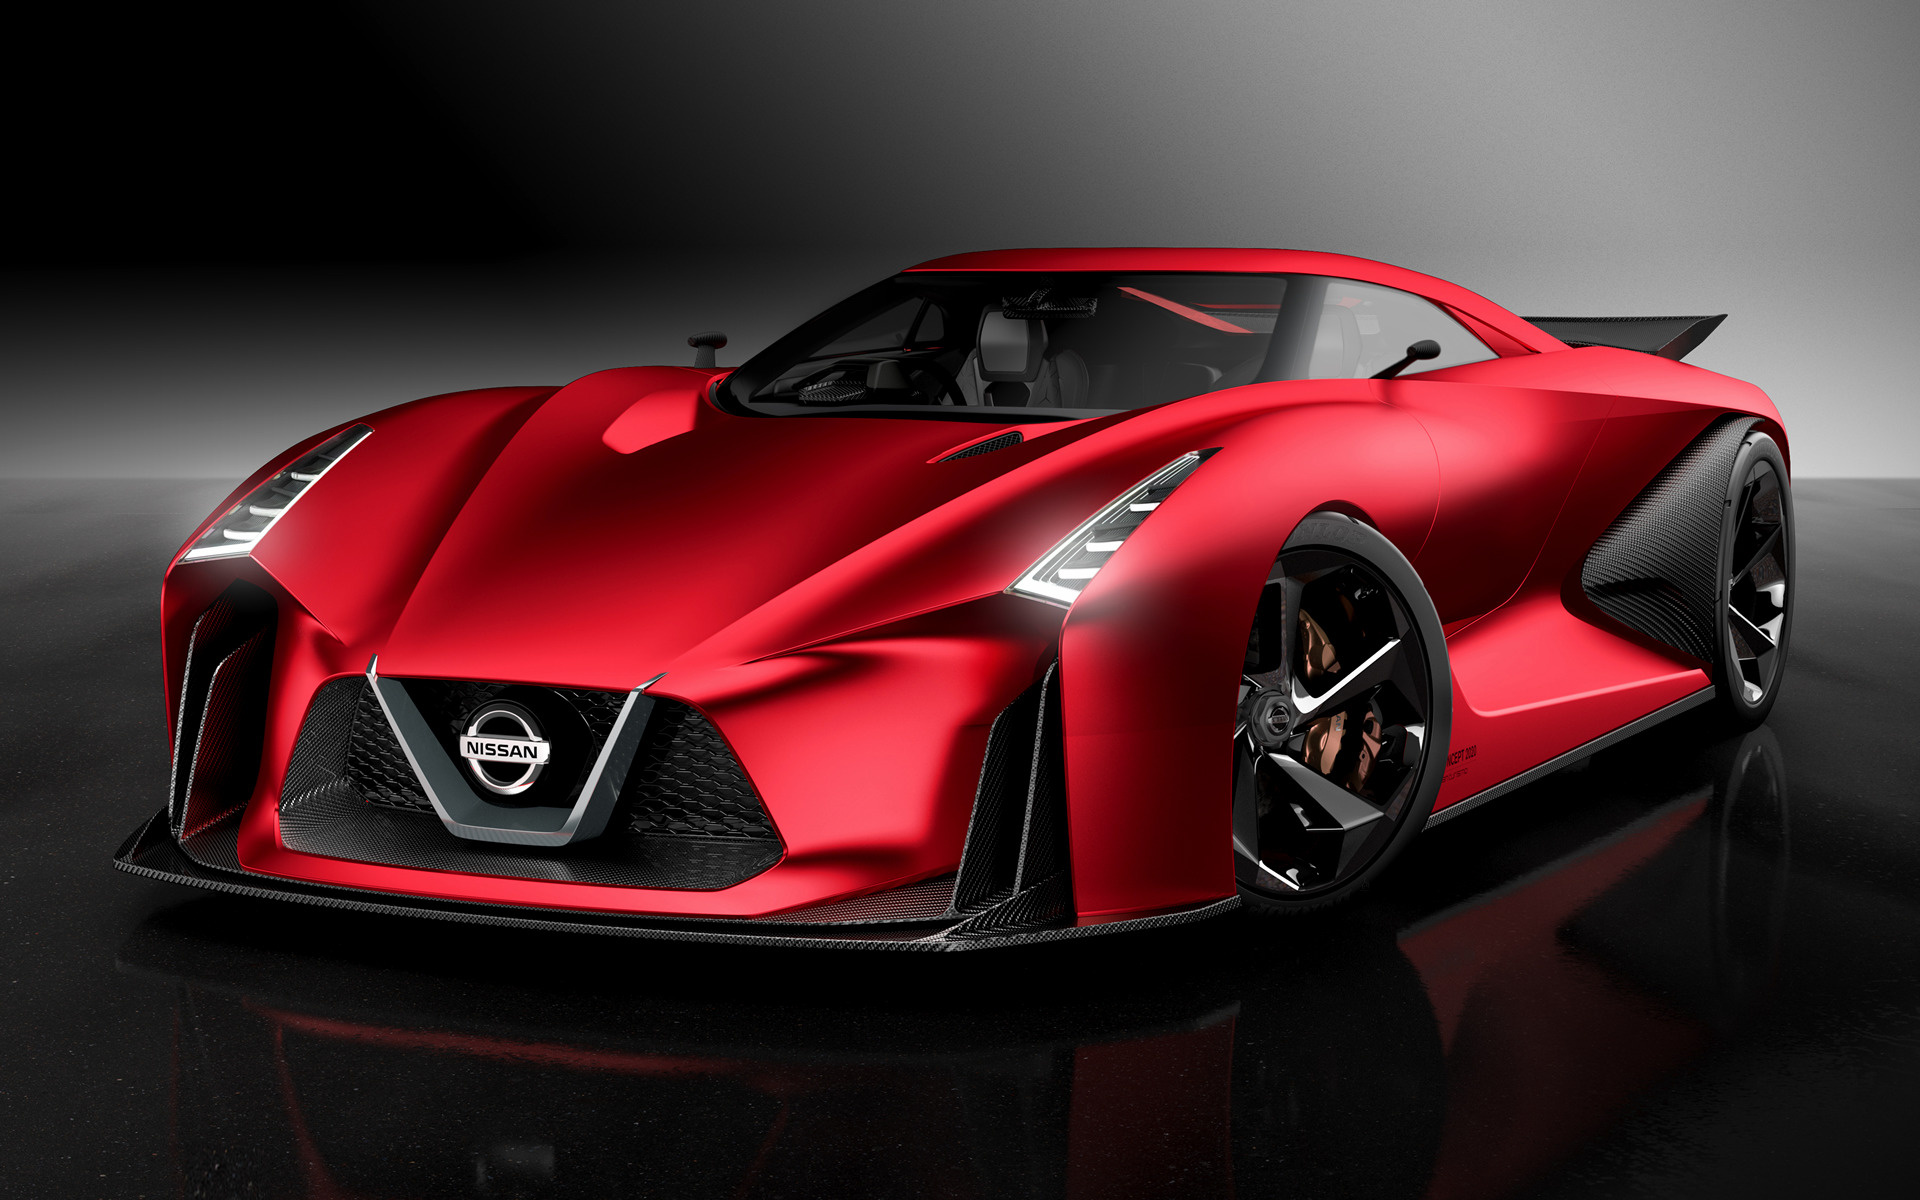 2015 Nissan Concept 2020 Vision Gran Turismo   Wallpapers and HD 1920x1200